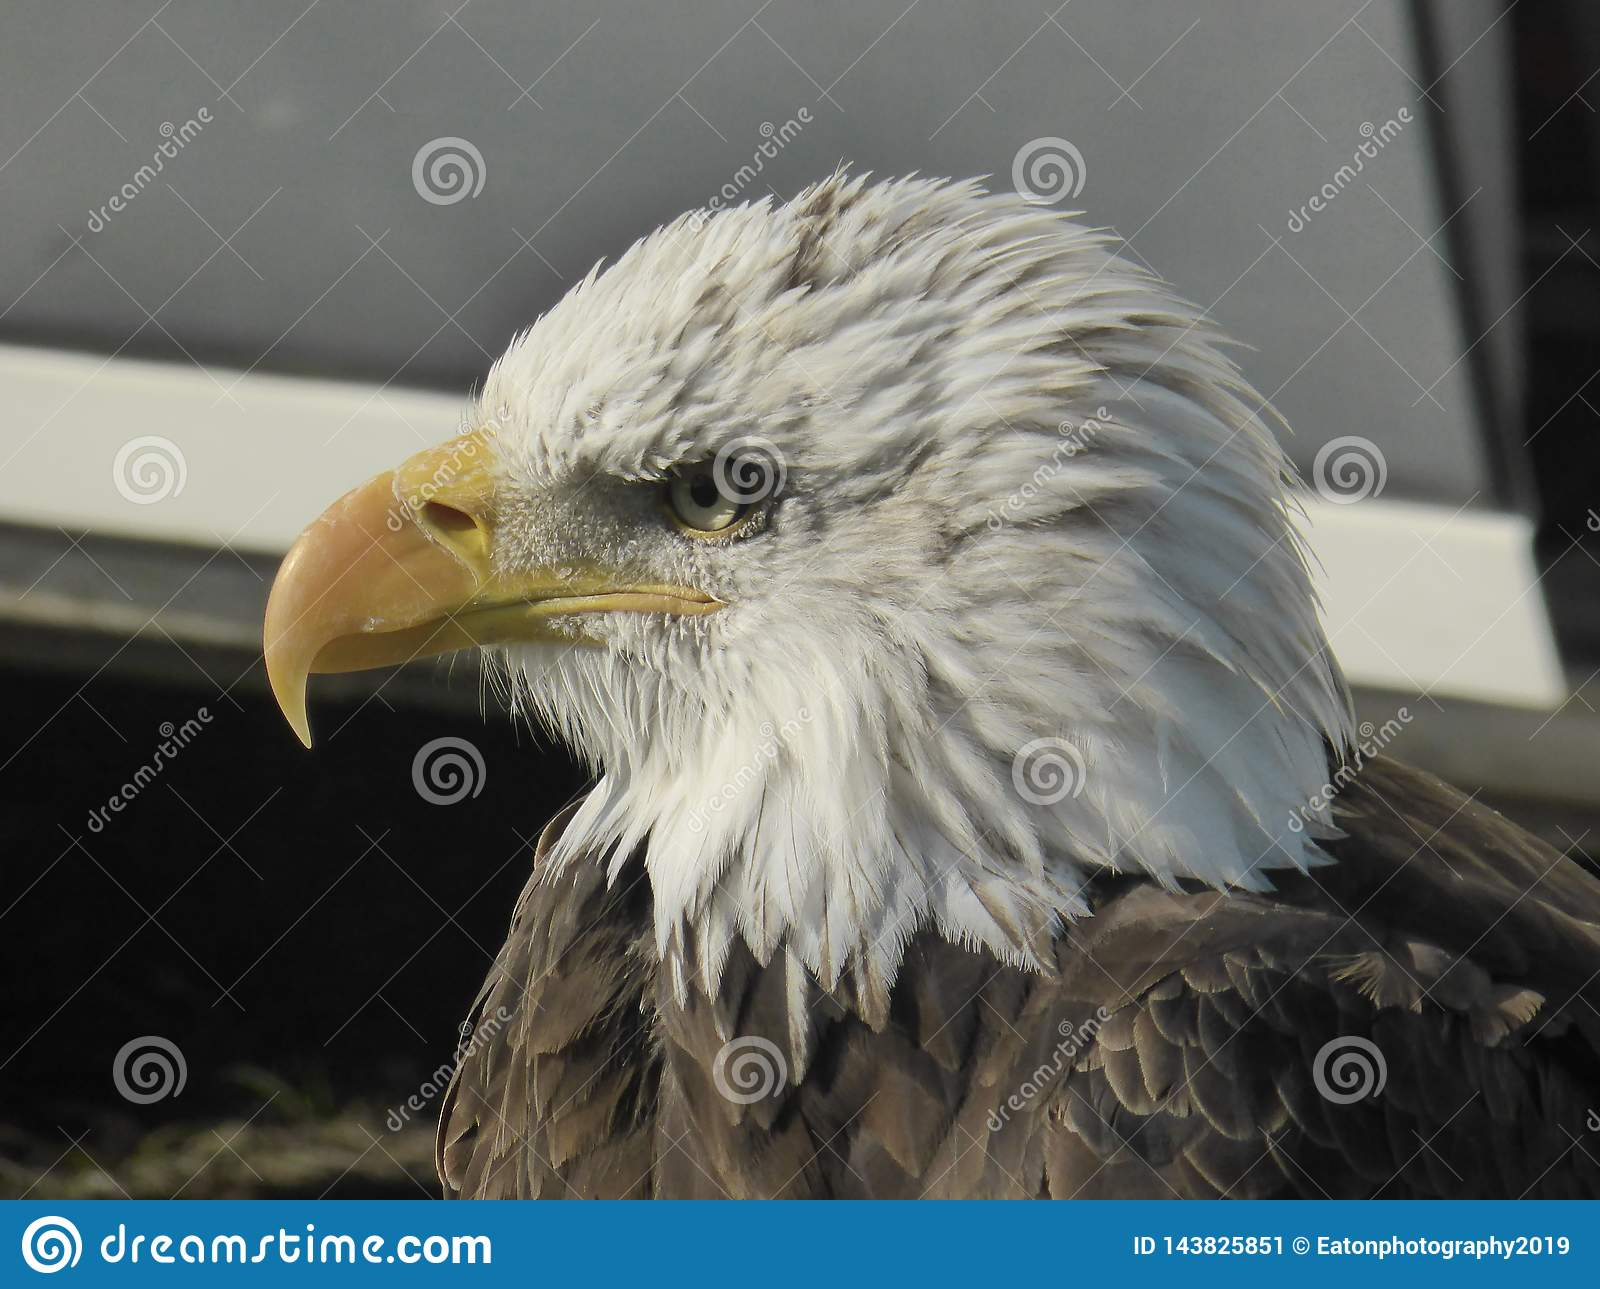 Bald eagle looking out at the world